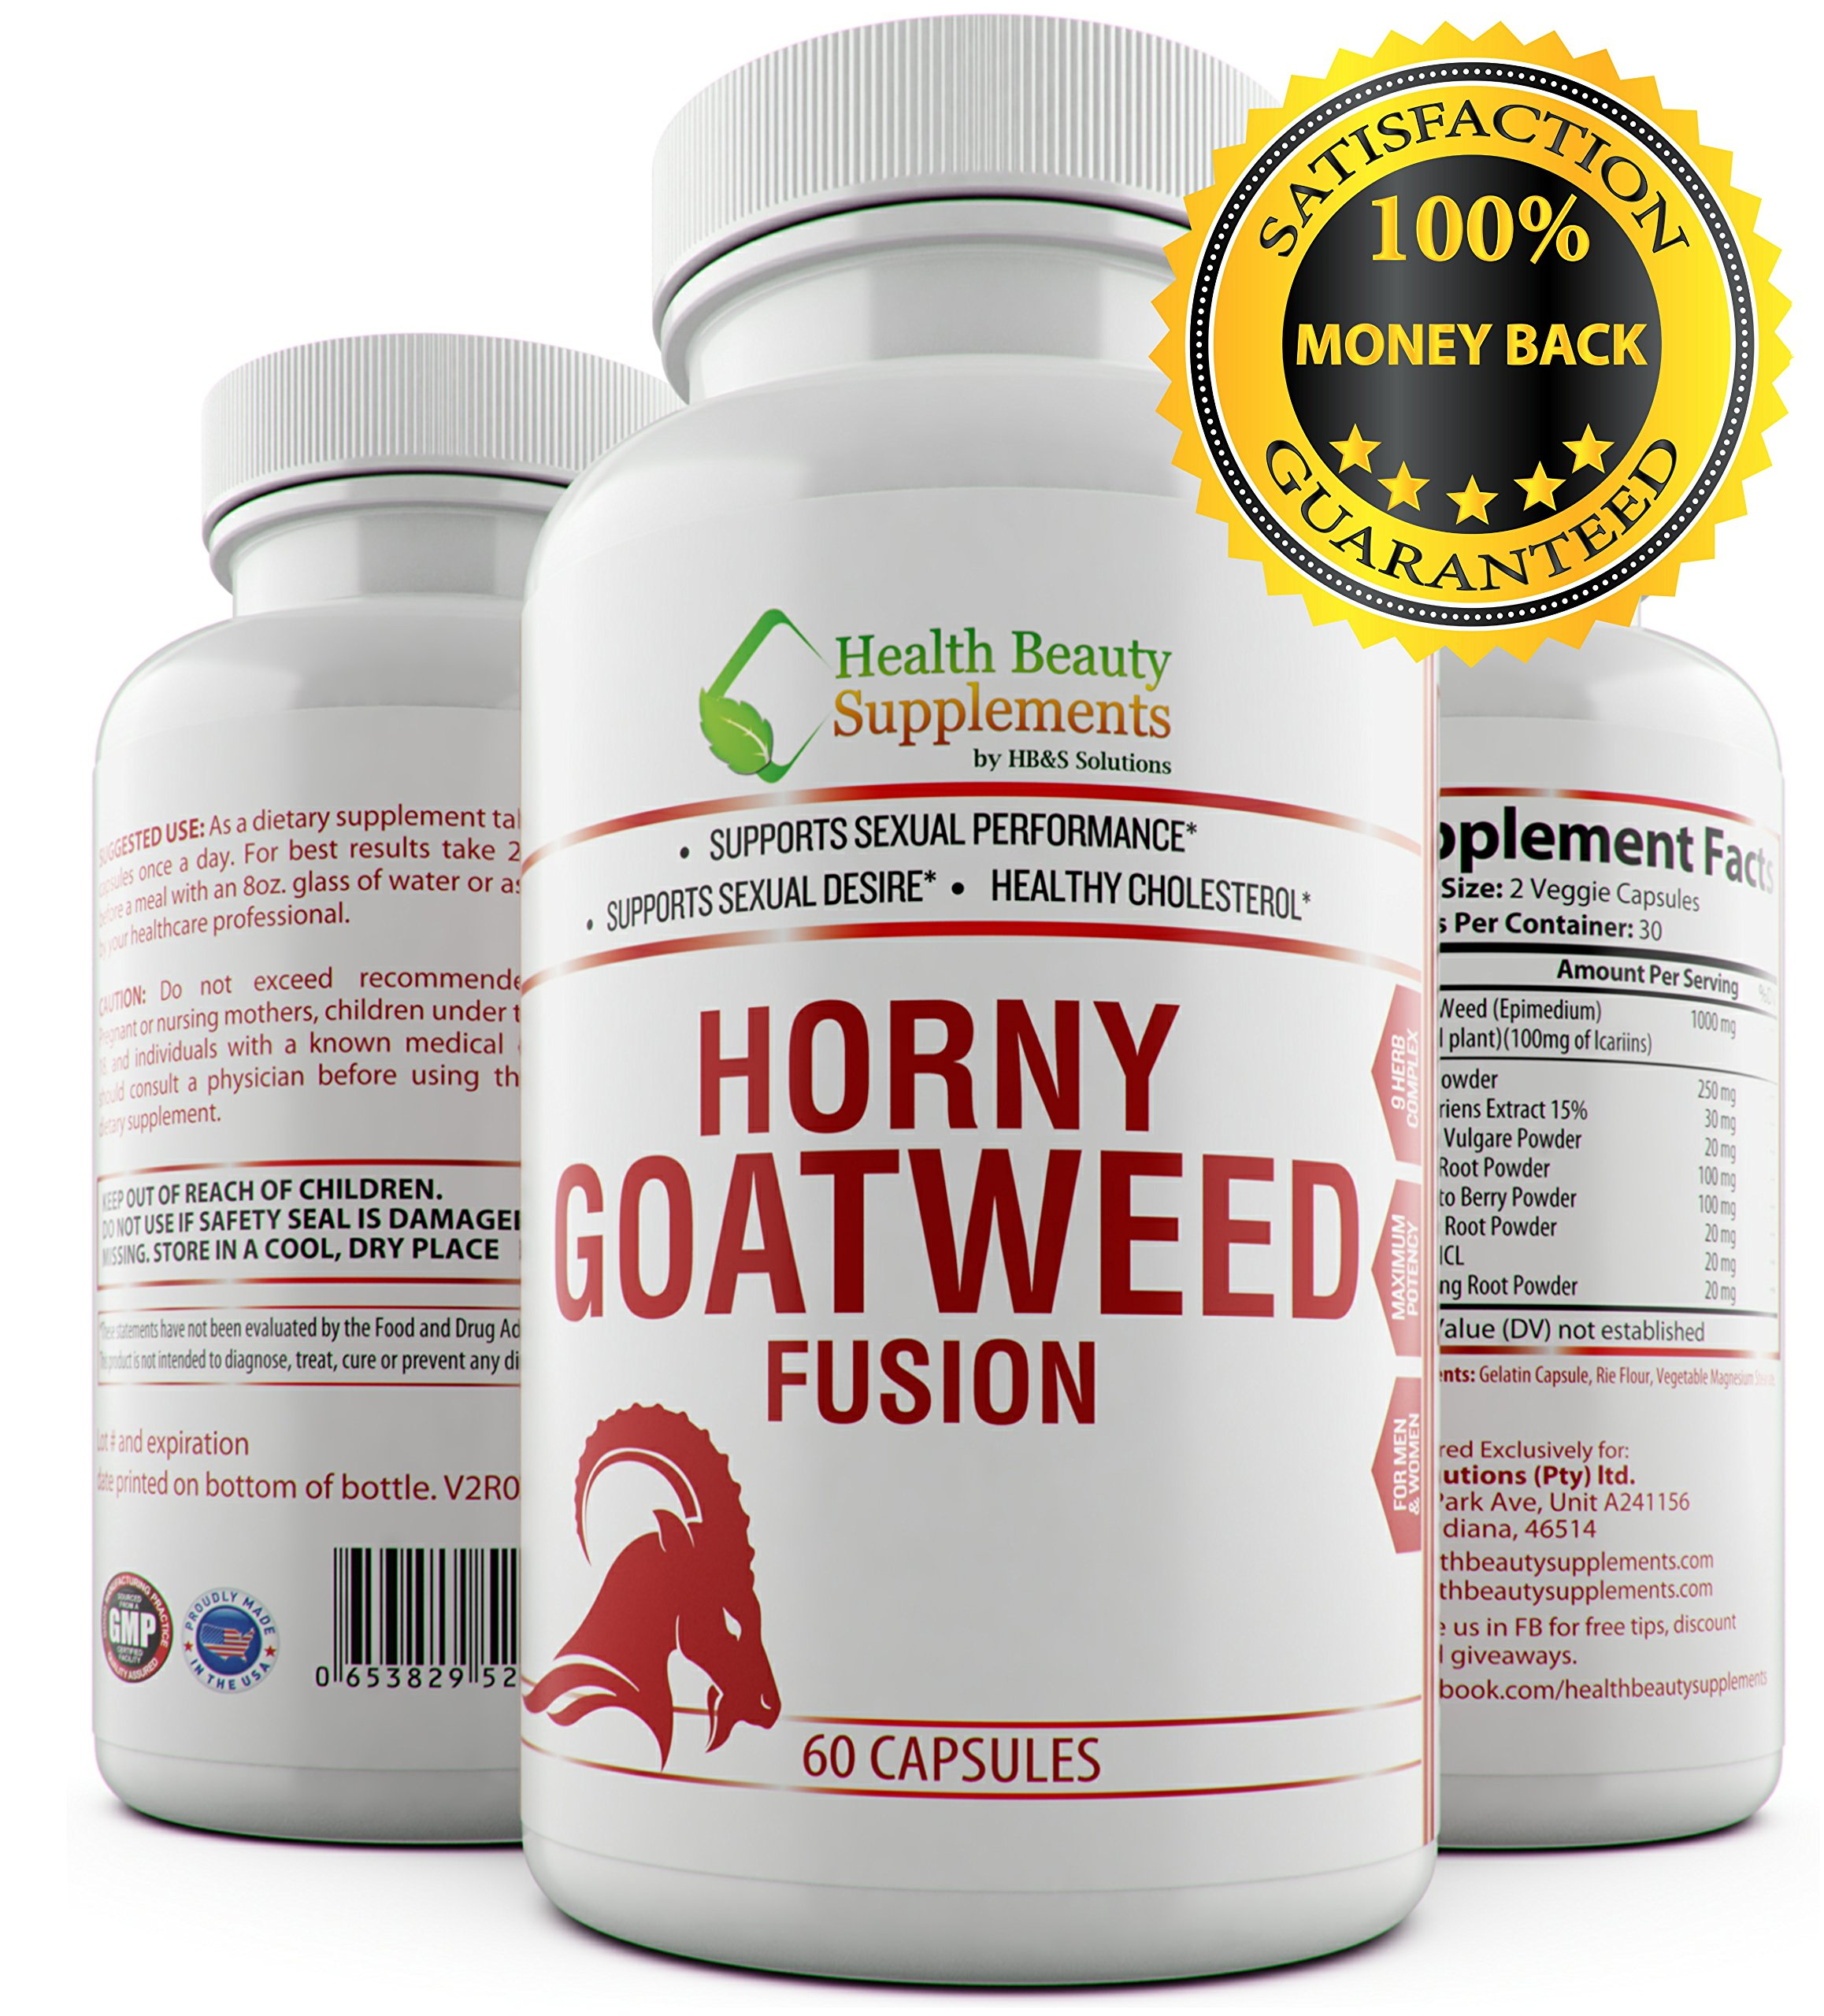 Vitamins for sexual performance, Hot nri girls